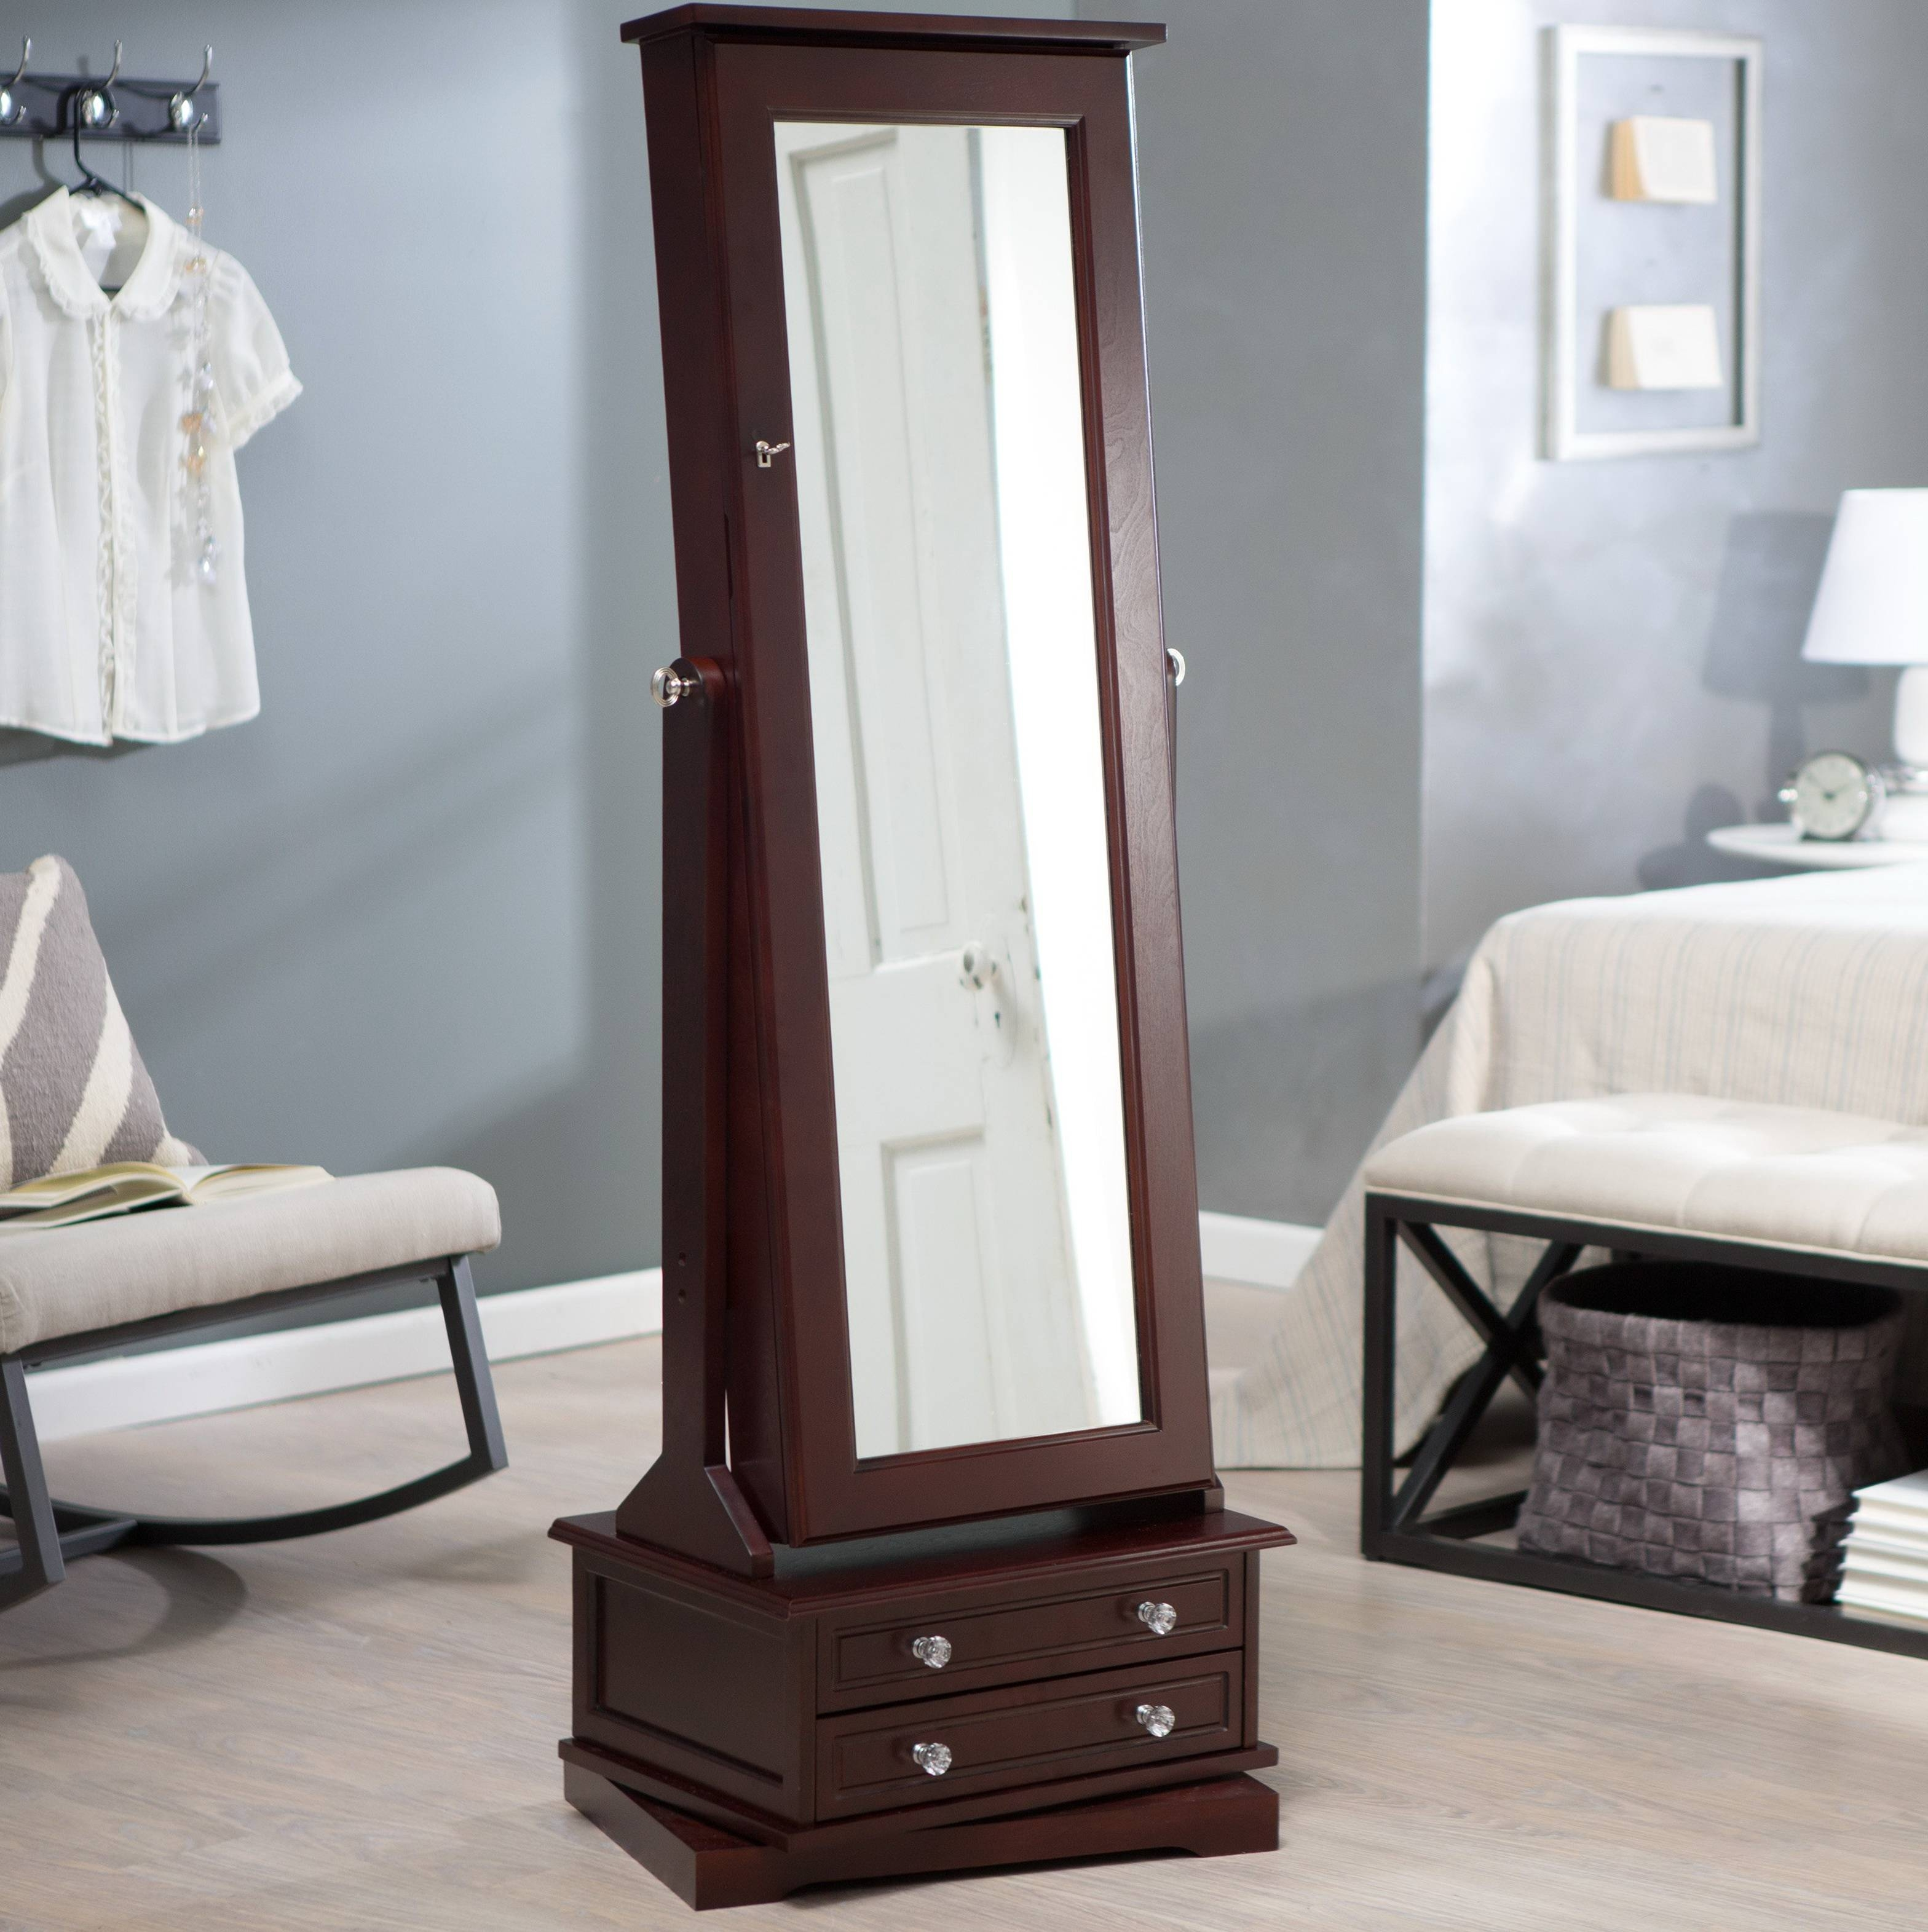 Bedroom Furniture : Standing Mirror Large Mirror Round Bedroom with regard to Round Shabby Chic Mirrors (Image 3 of 15)